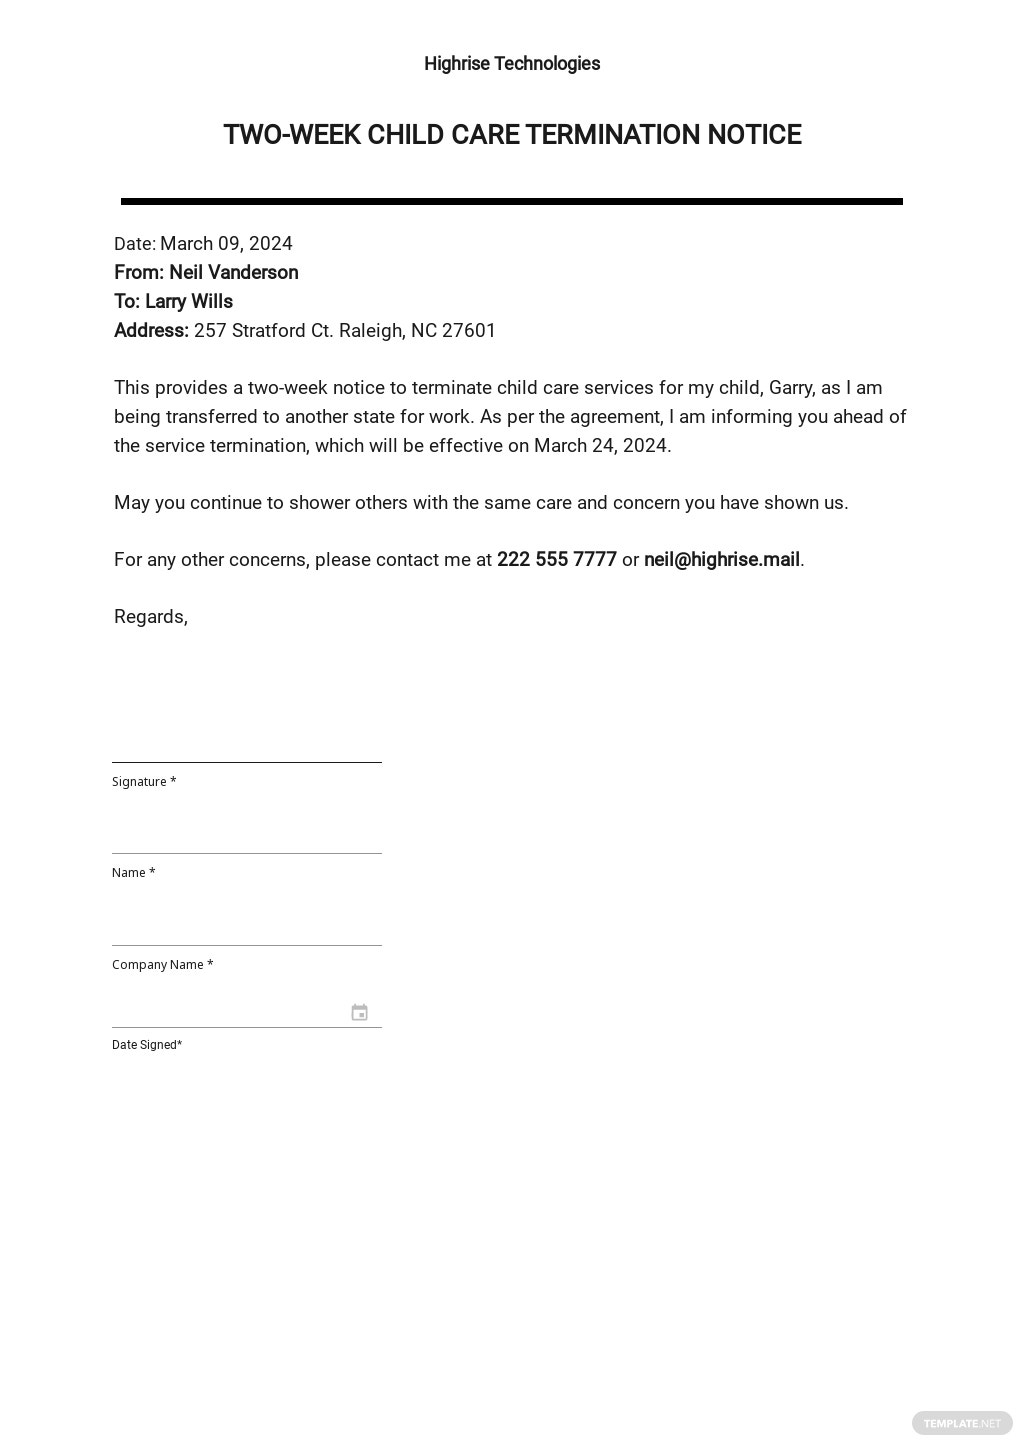 Two Week Child Day Care Termination Notice Sample Template